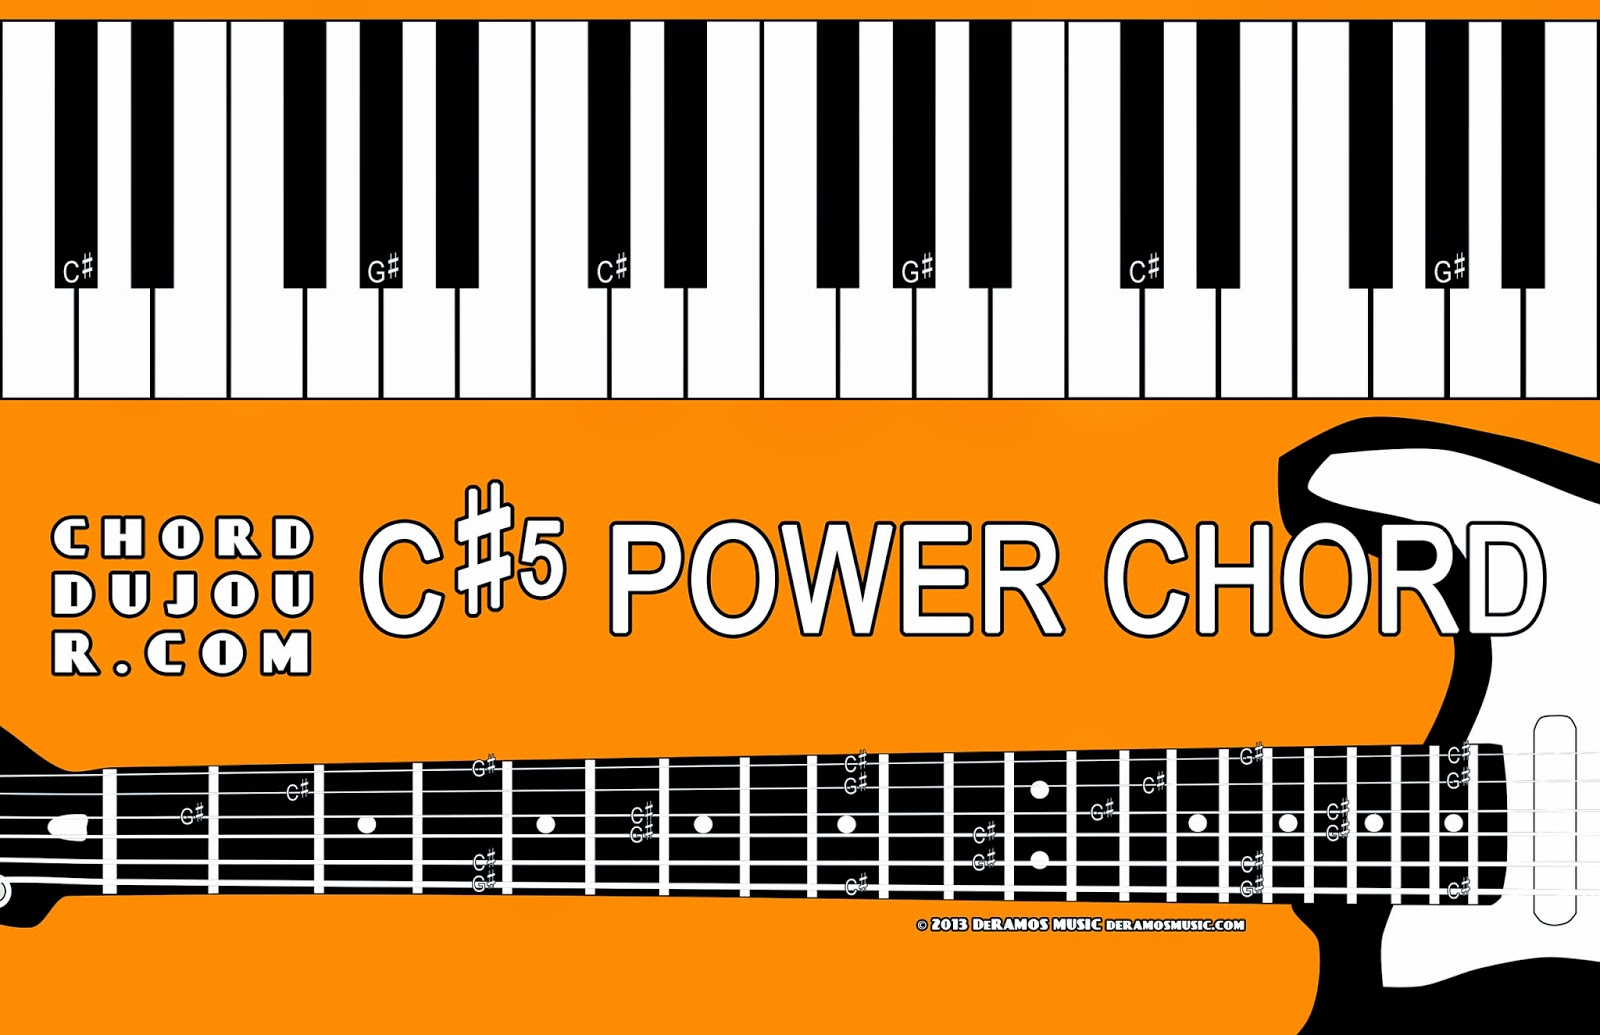 Chord du jour dictionary c5 power chord dictionary c5 power chord hexwebz Gallery